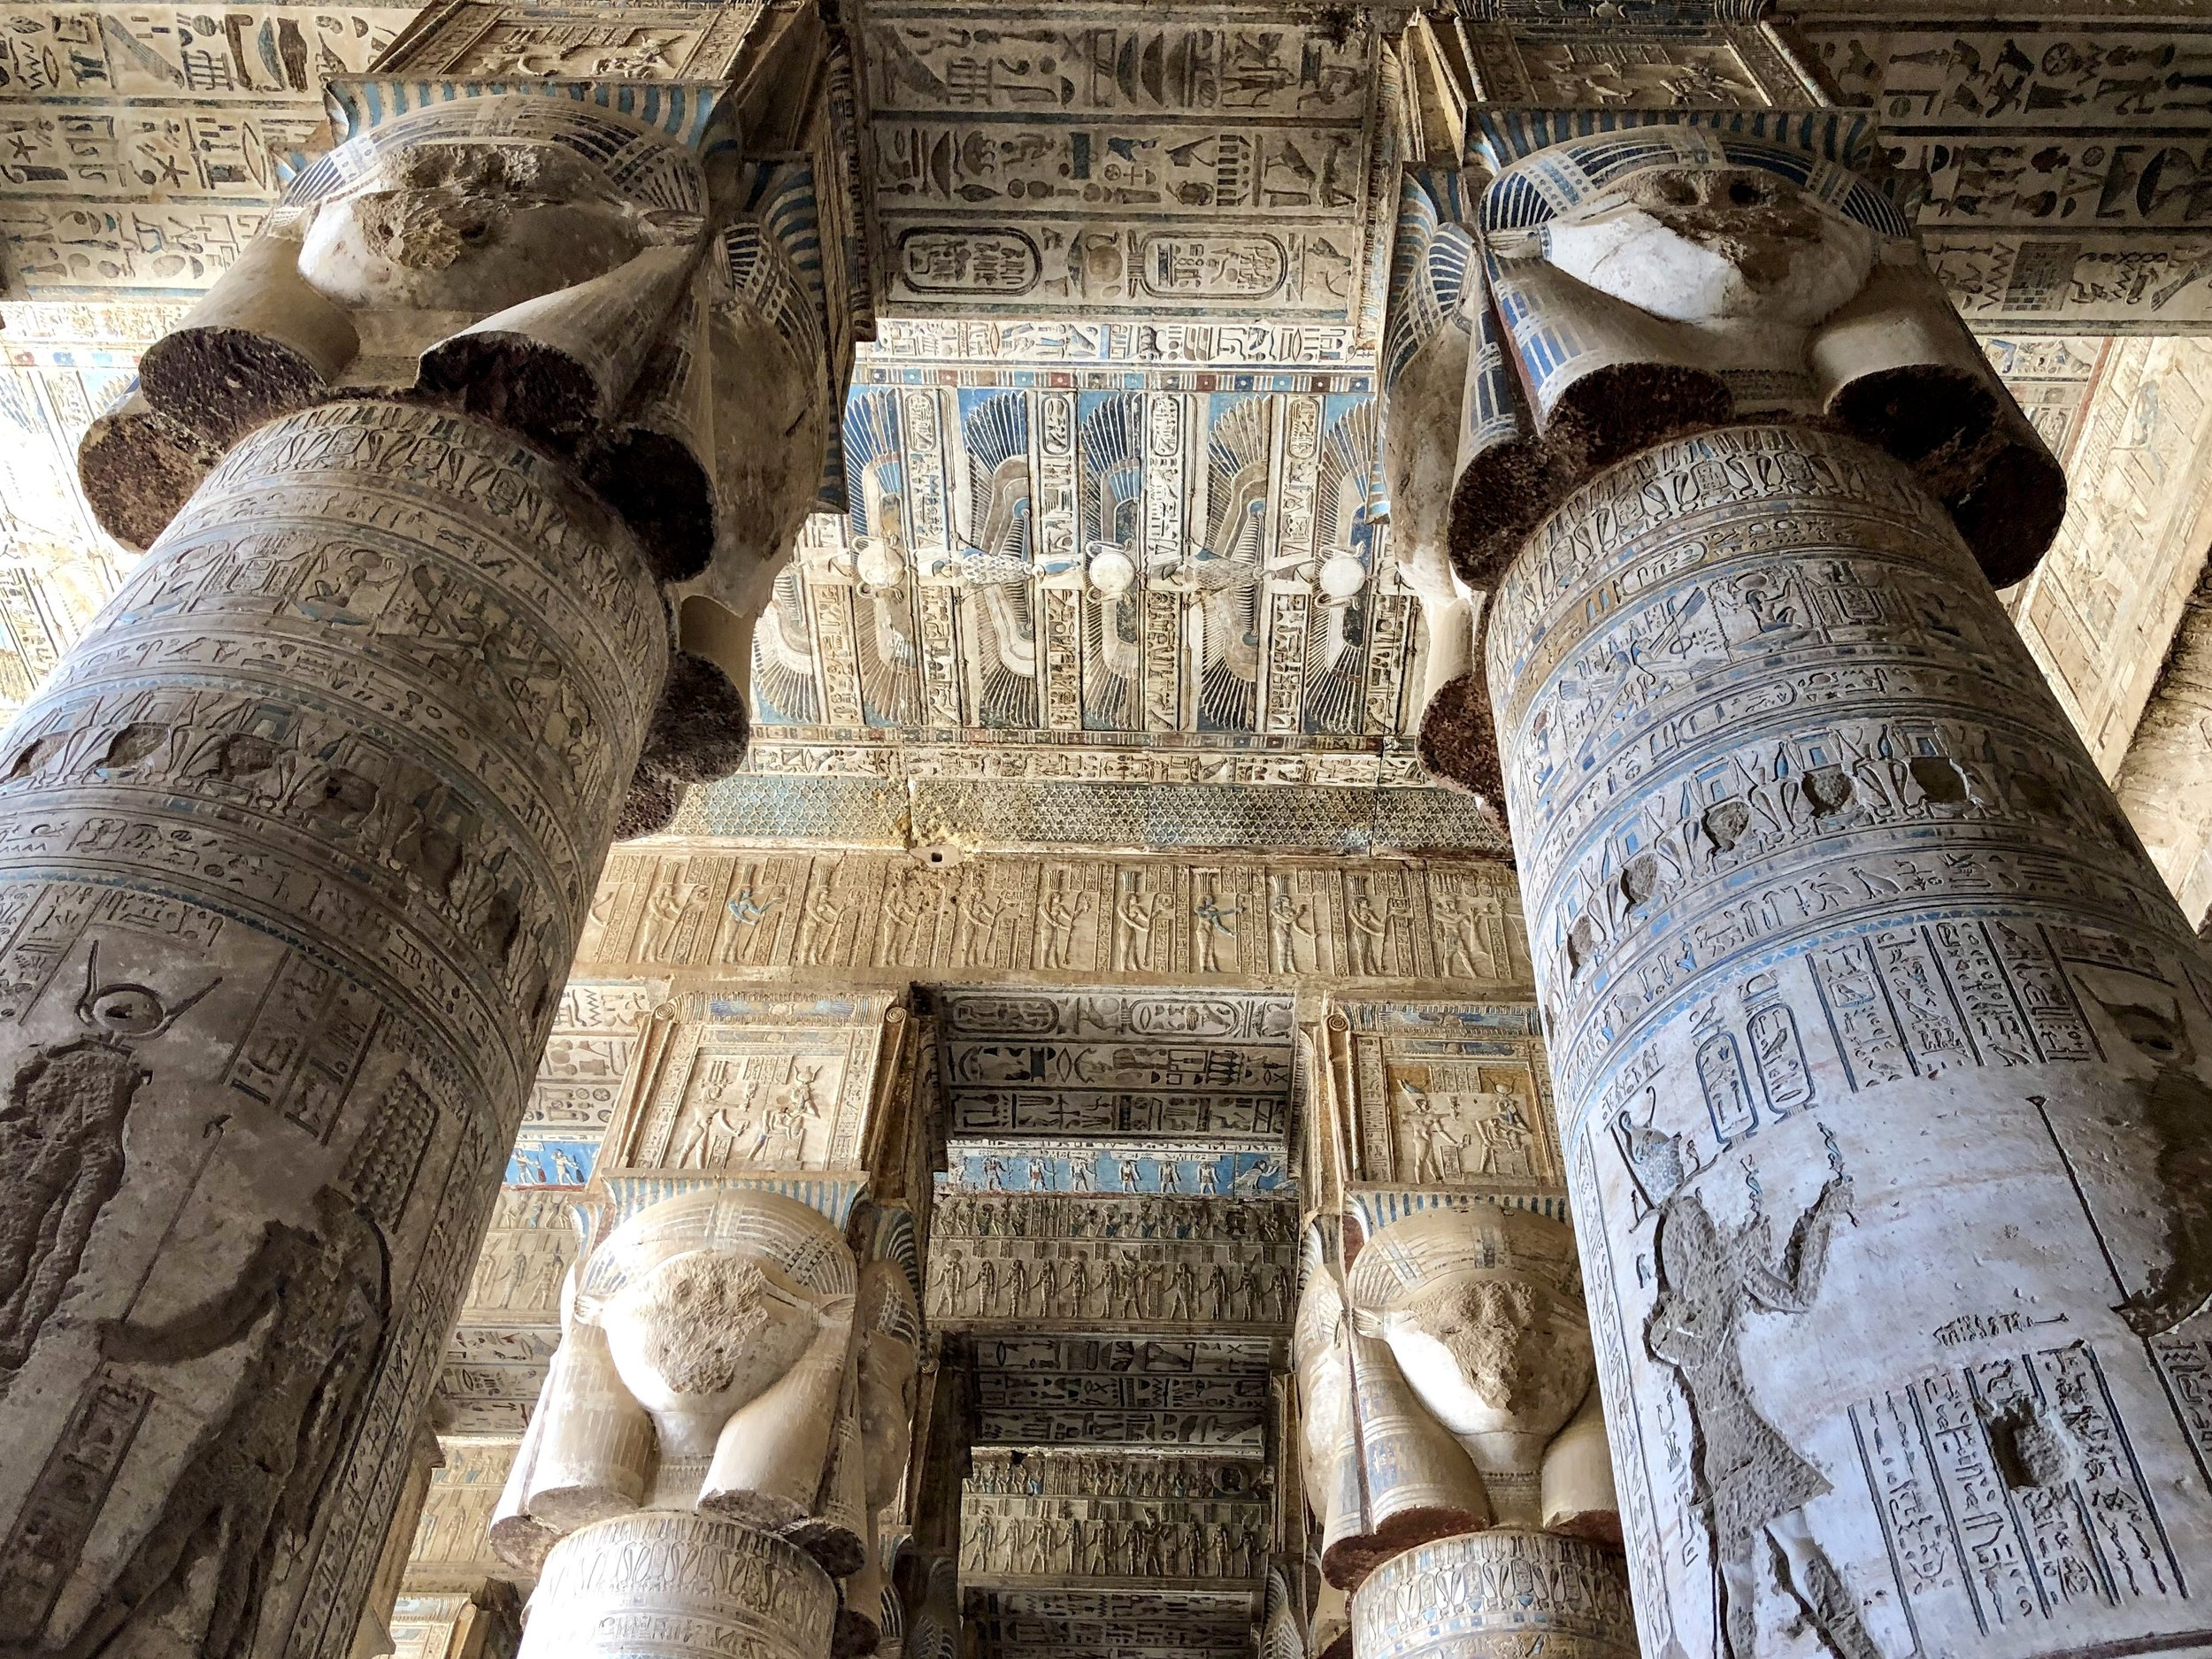 It's sad to see that every single image of Hathor atop the columns has been vandalized